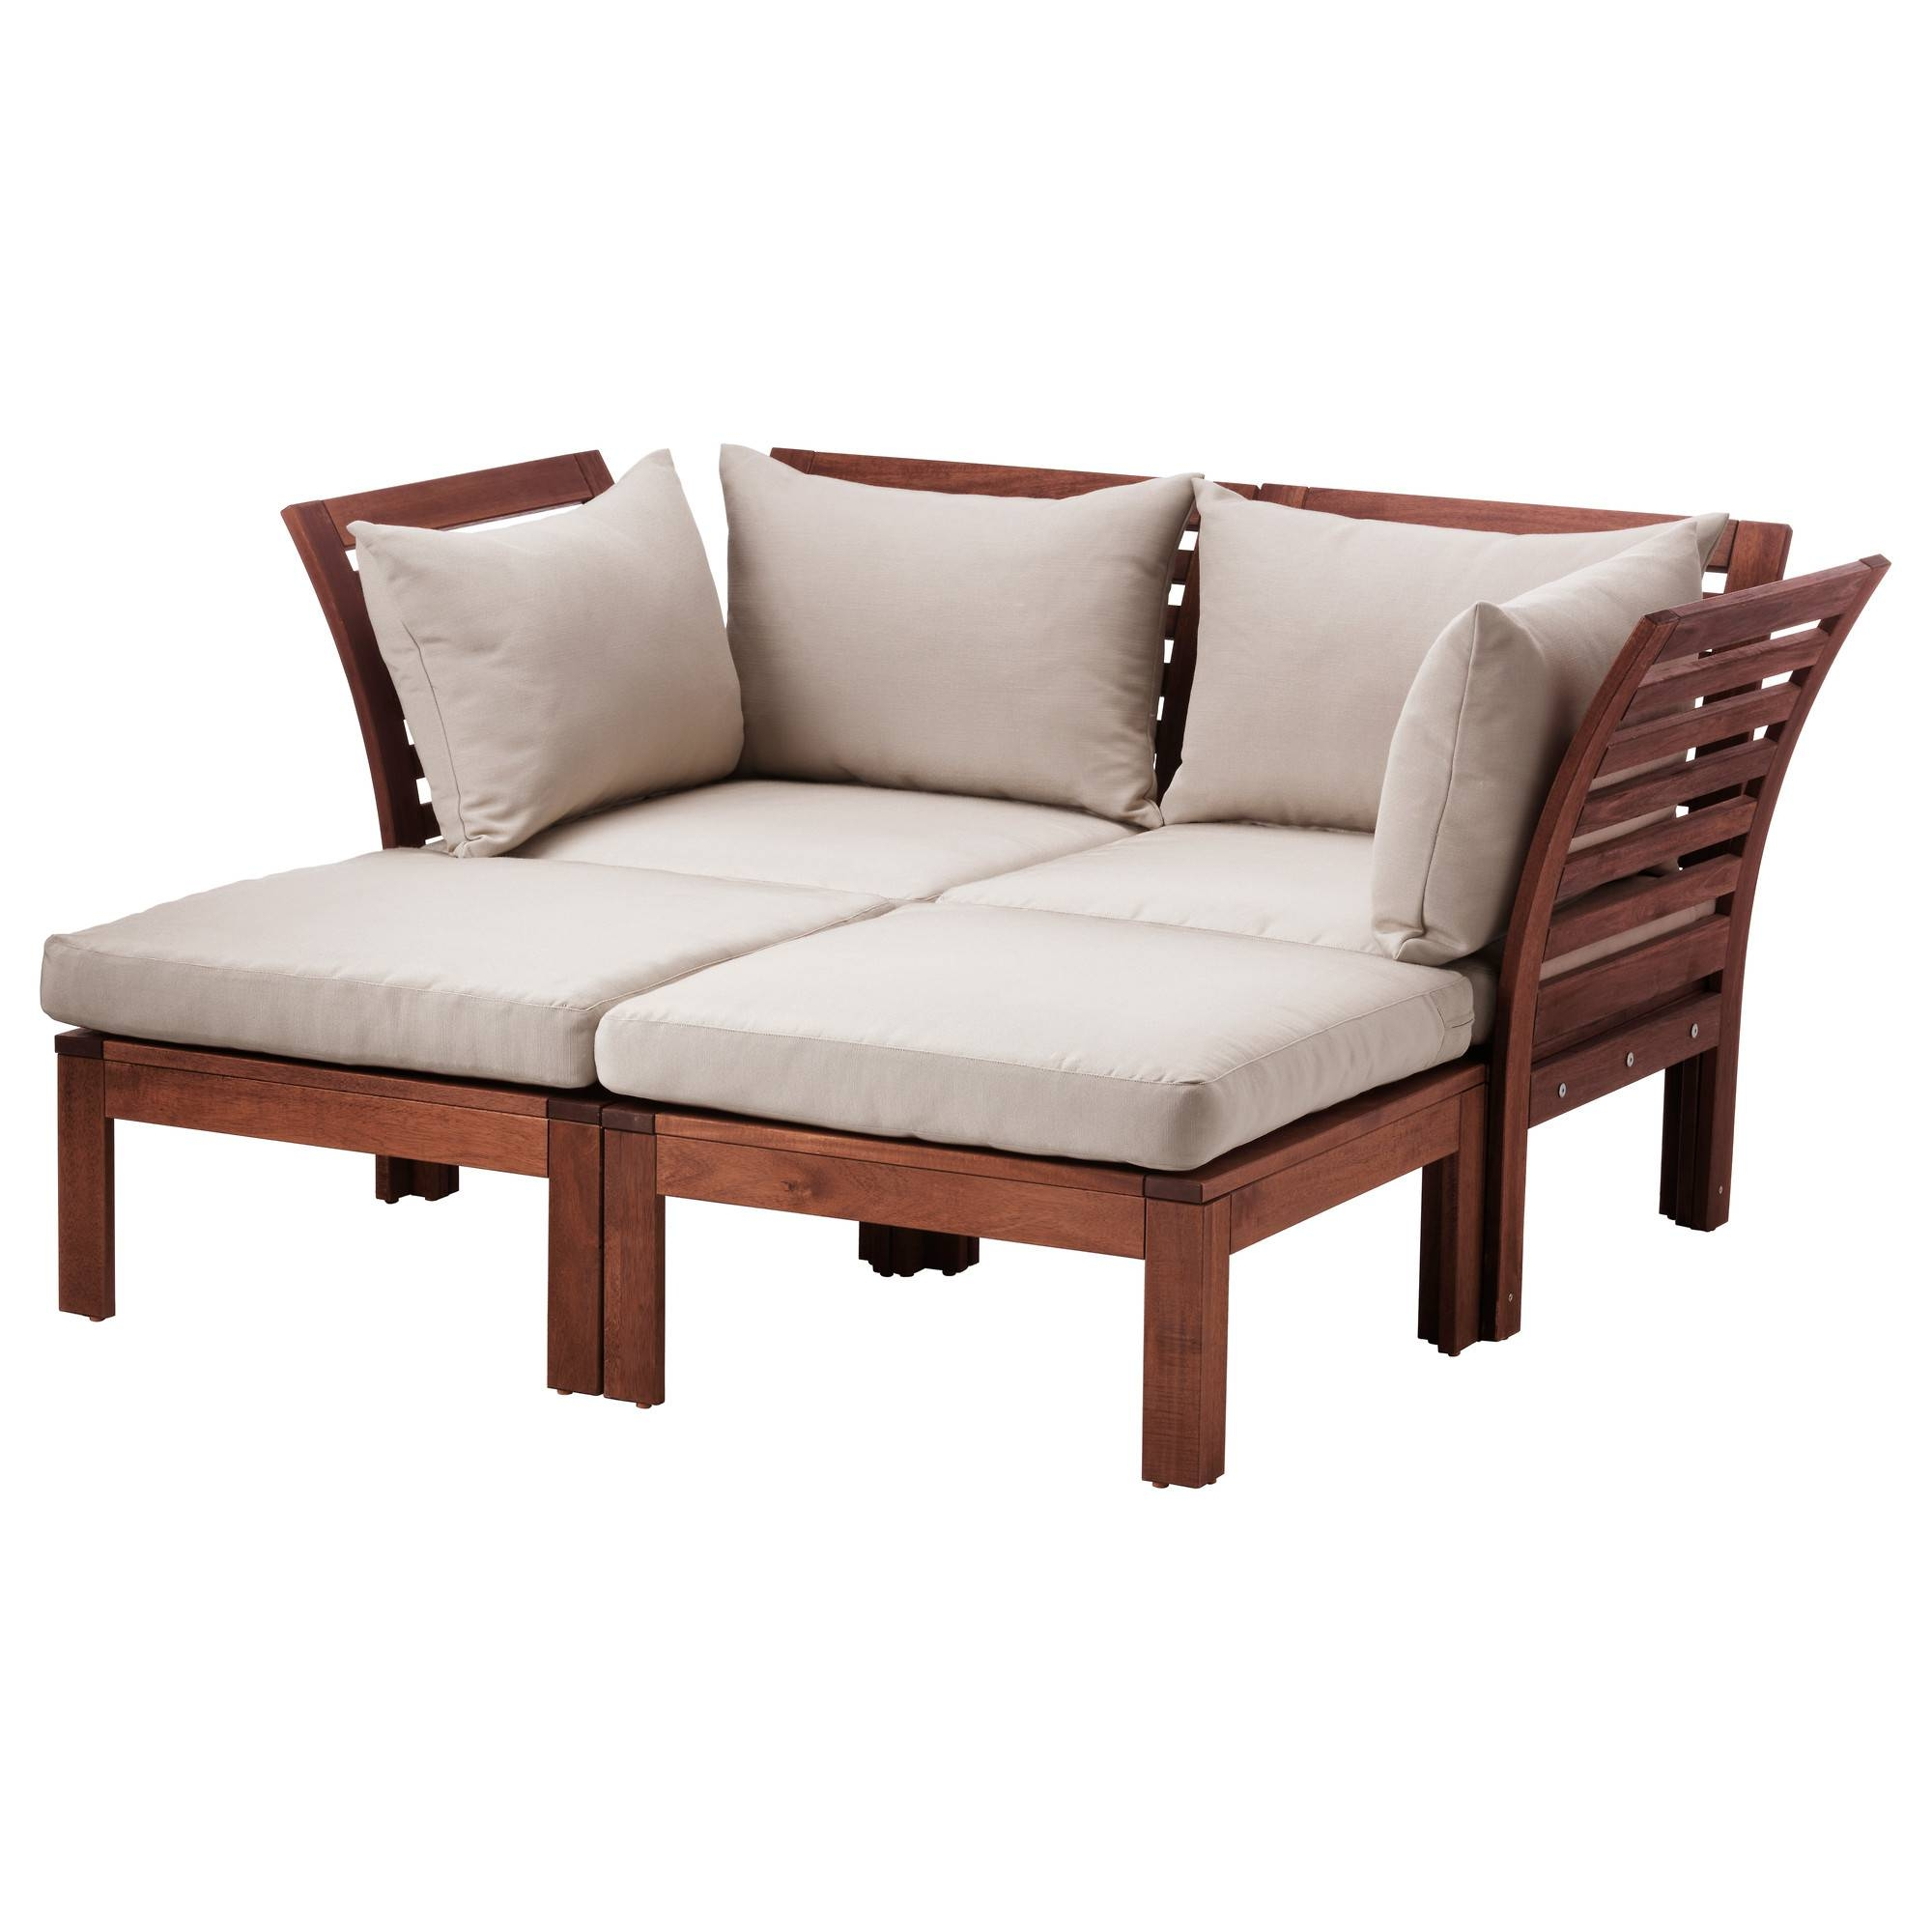 Conservatory Furniture & Garden Sofa Sets | Ikea regarding Small Sofas Ikea (Image 3 of 30)